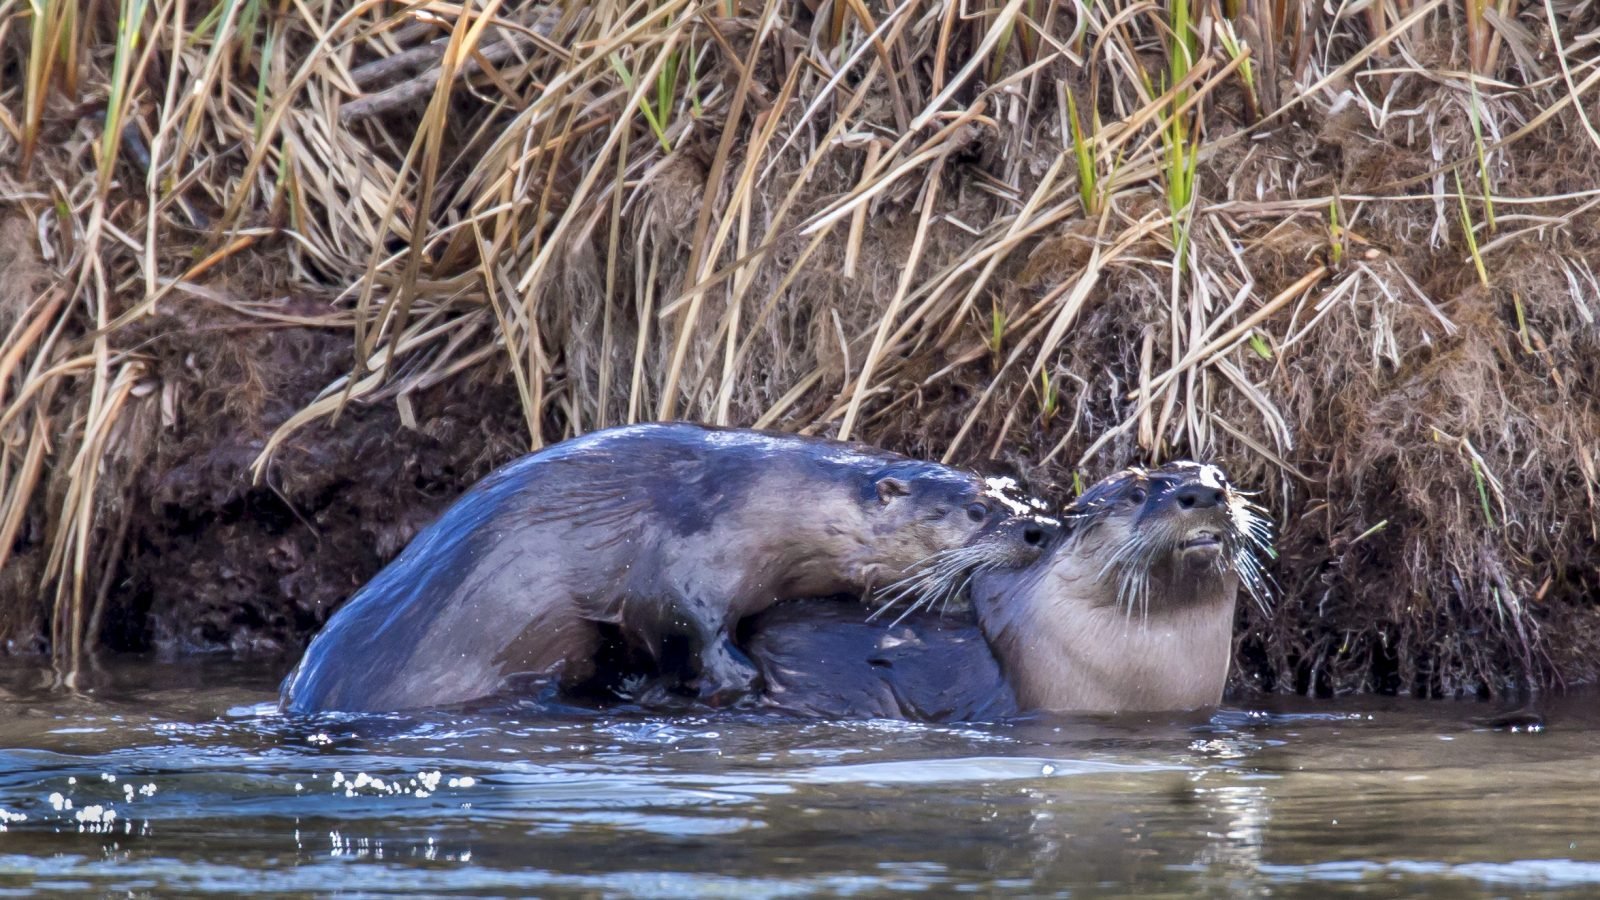 Mating River Otters